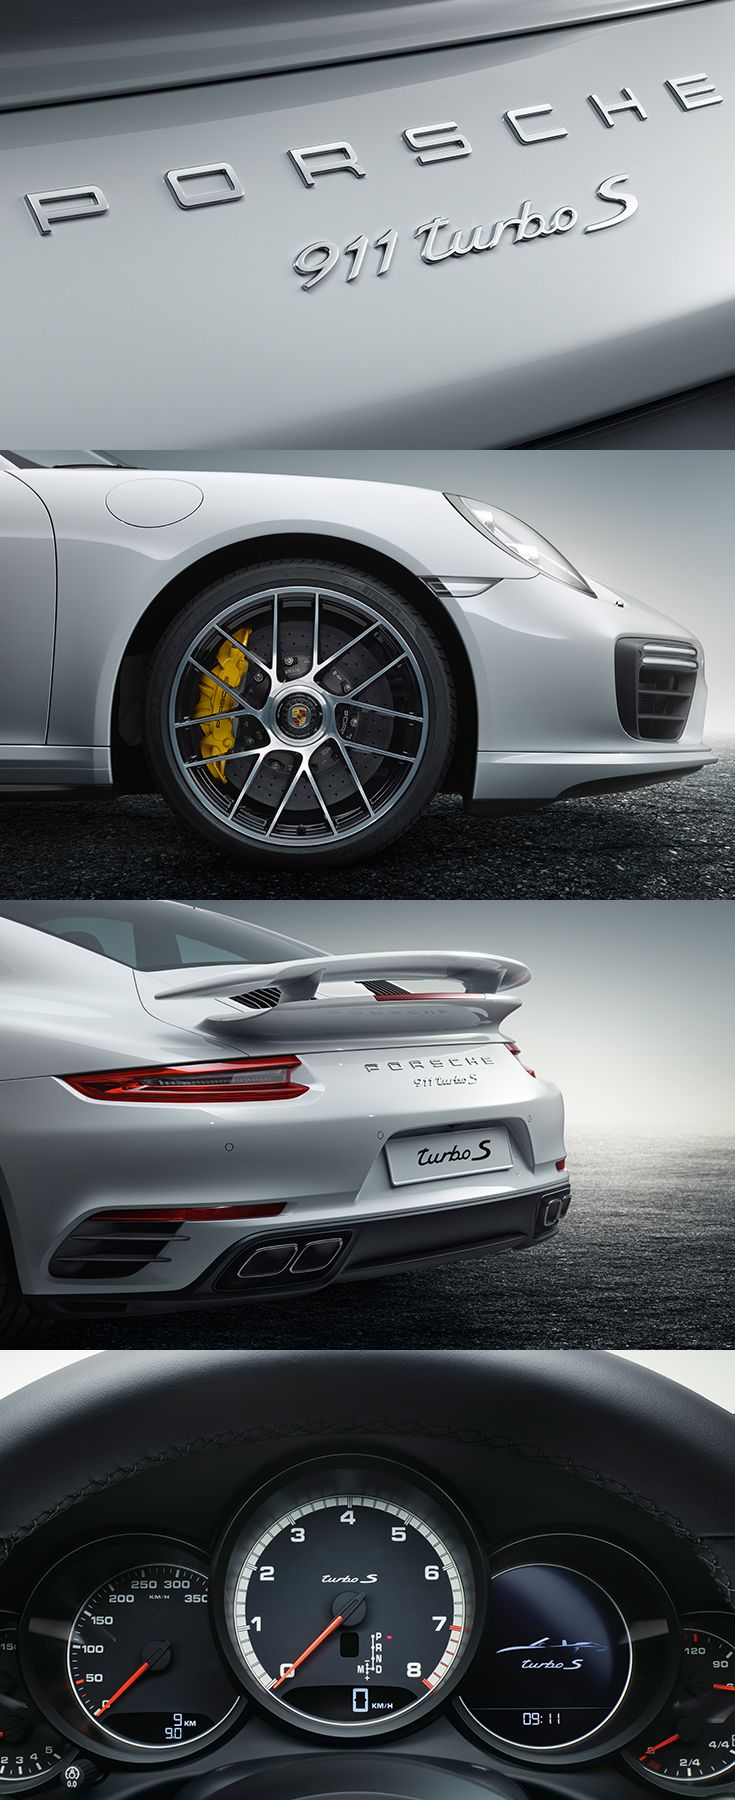 Even just a first glance gives an indication of how impressive the new 911 Turbo is in terms of power. Fuel consumption* 911 Turbo models: Combined: 9,3-9,1 l/100 km; Emissions: 216-212 g/km.